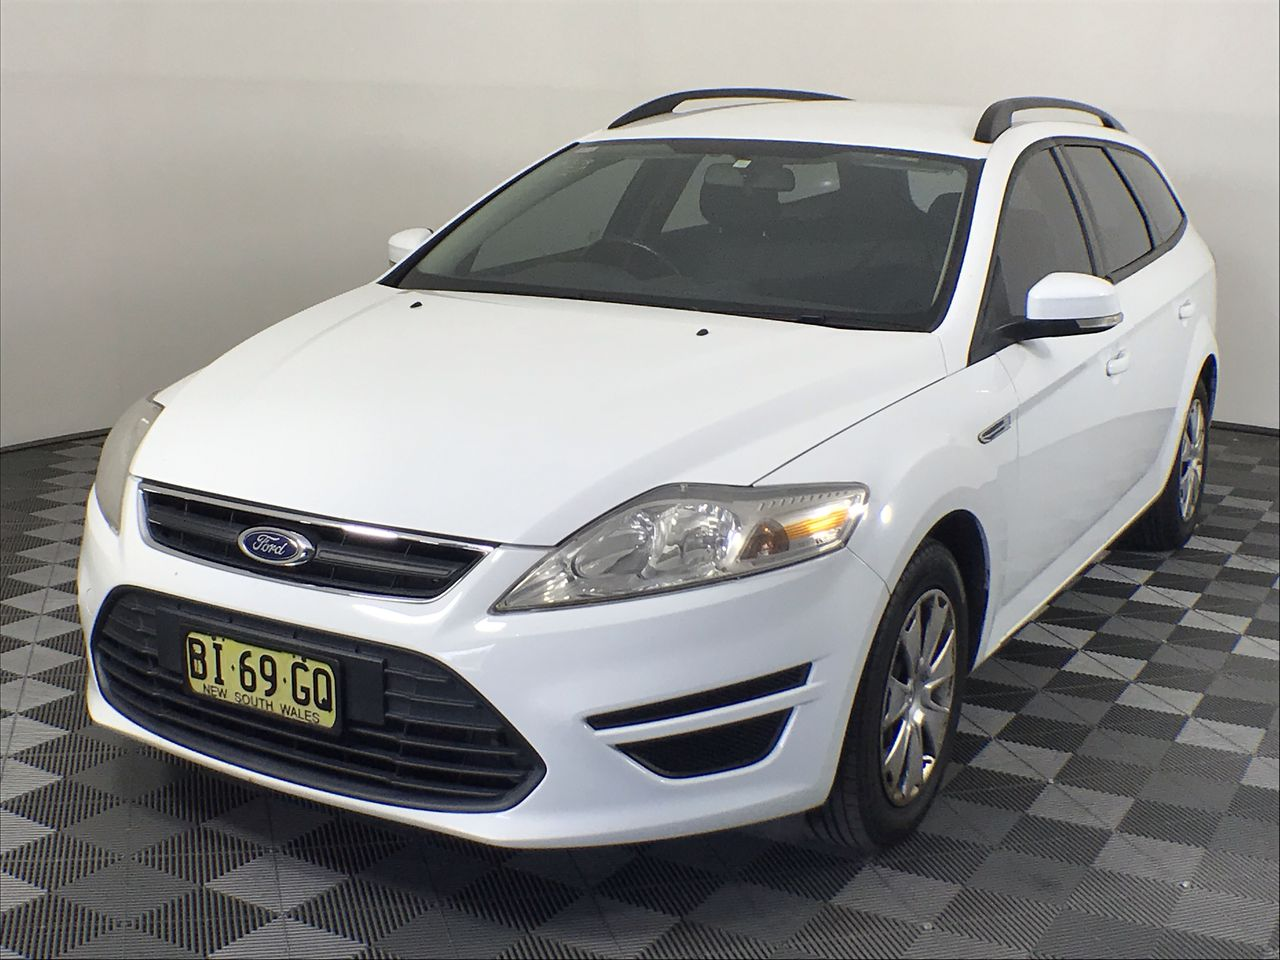 2010 Ford Mondeo LX Auto Wagon 129,611kms